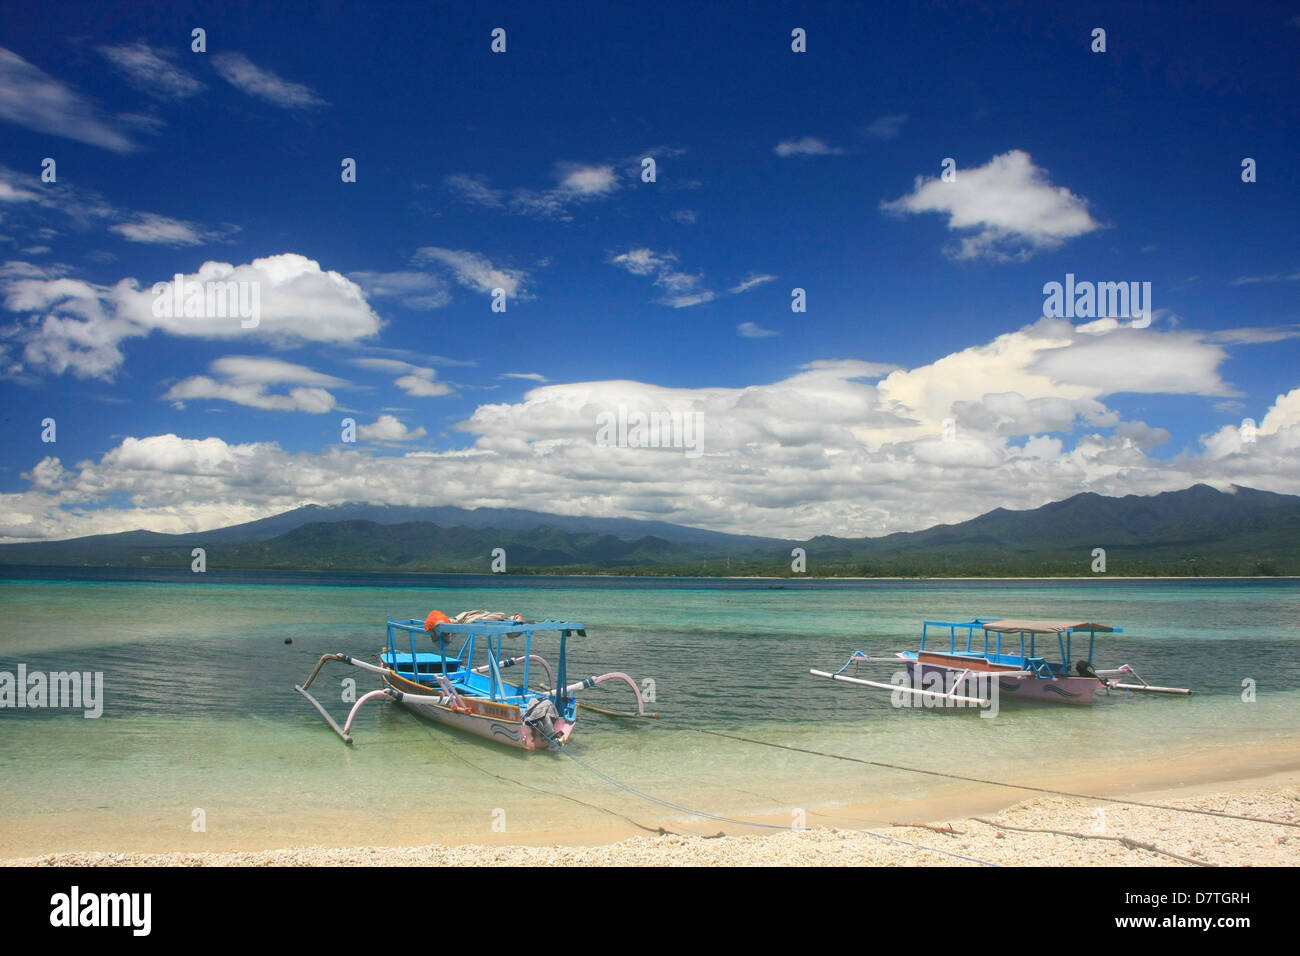 Outrigger boats at beach, Gili Air island, Indonesia - Stock Image